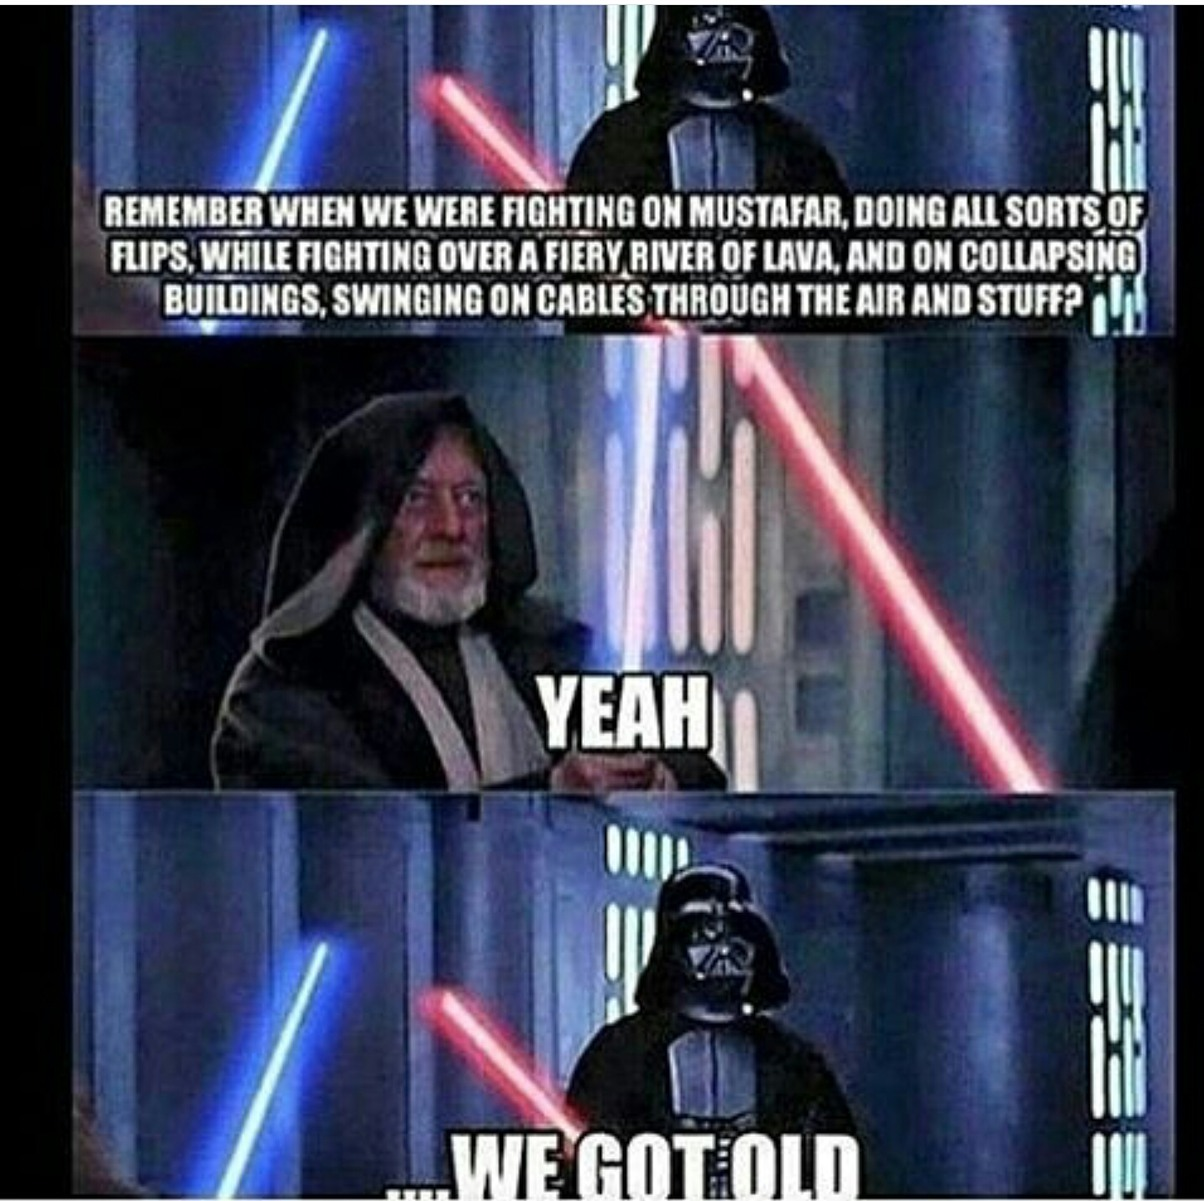 Yep, another Star Wars meme